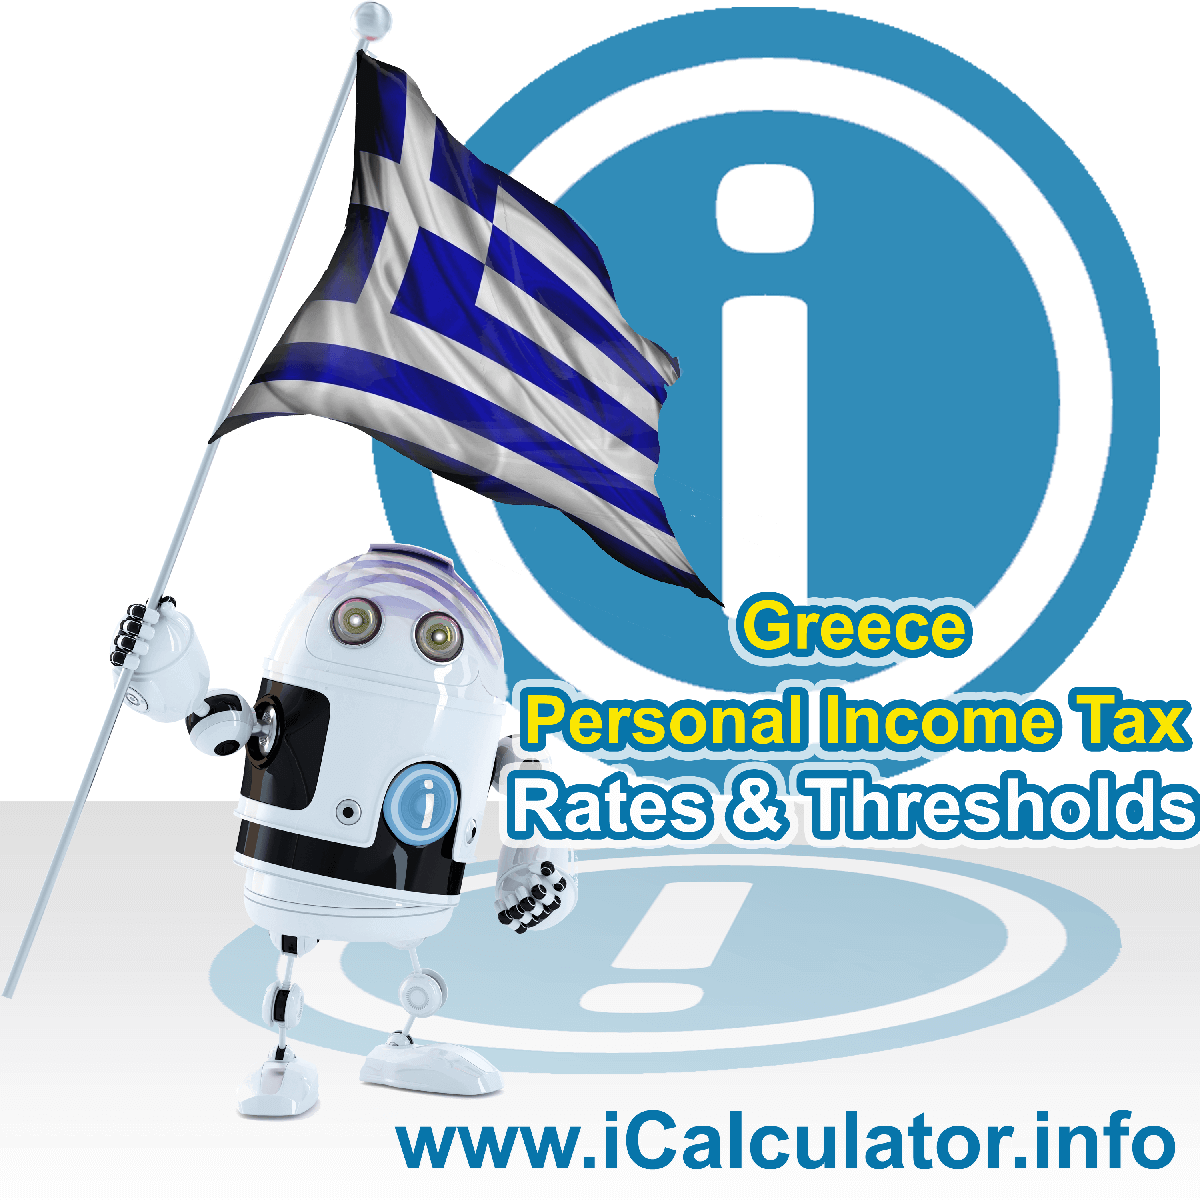 Greece Salary Calculator. This image shows the Greeceese flag and information relating to the tax formula for the Greece Tax Calculator